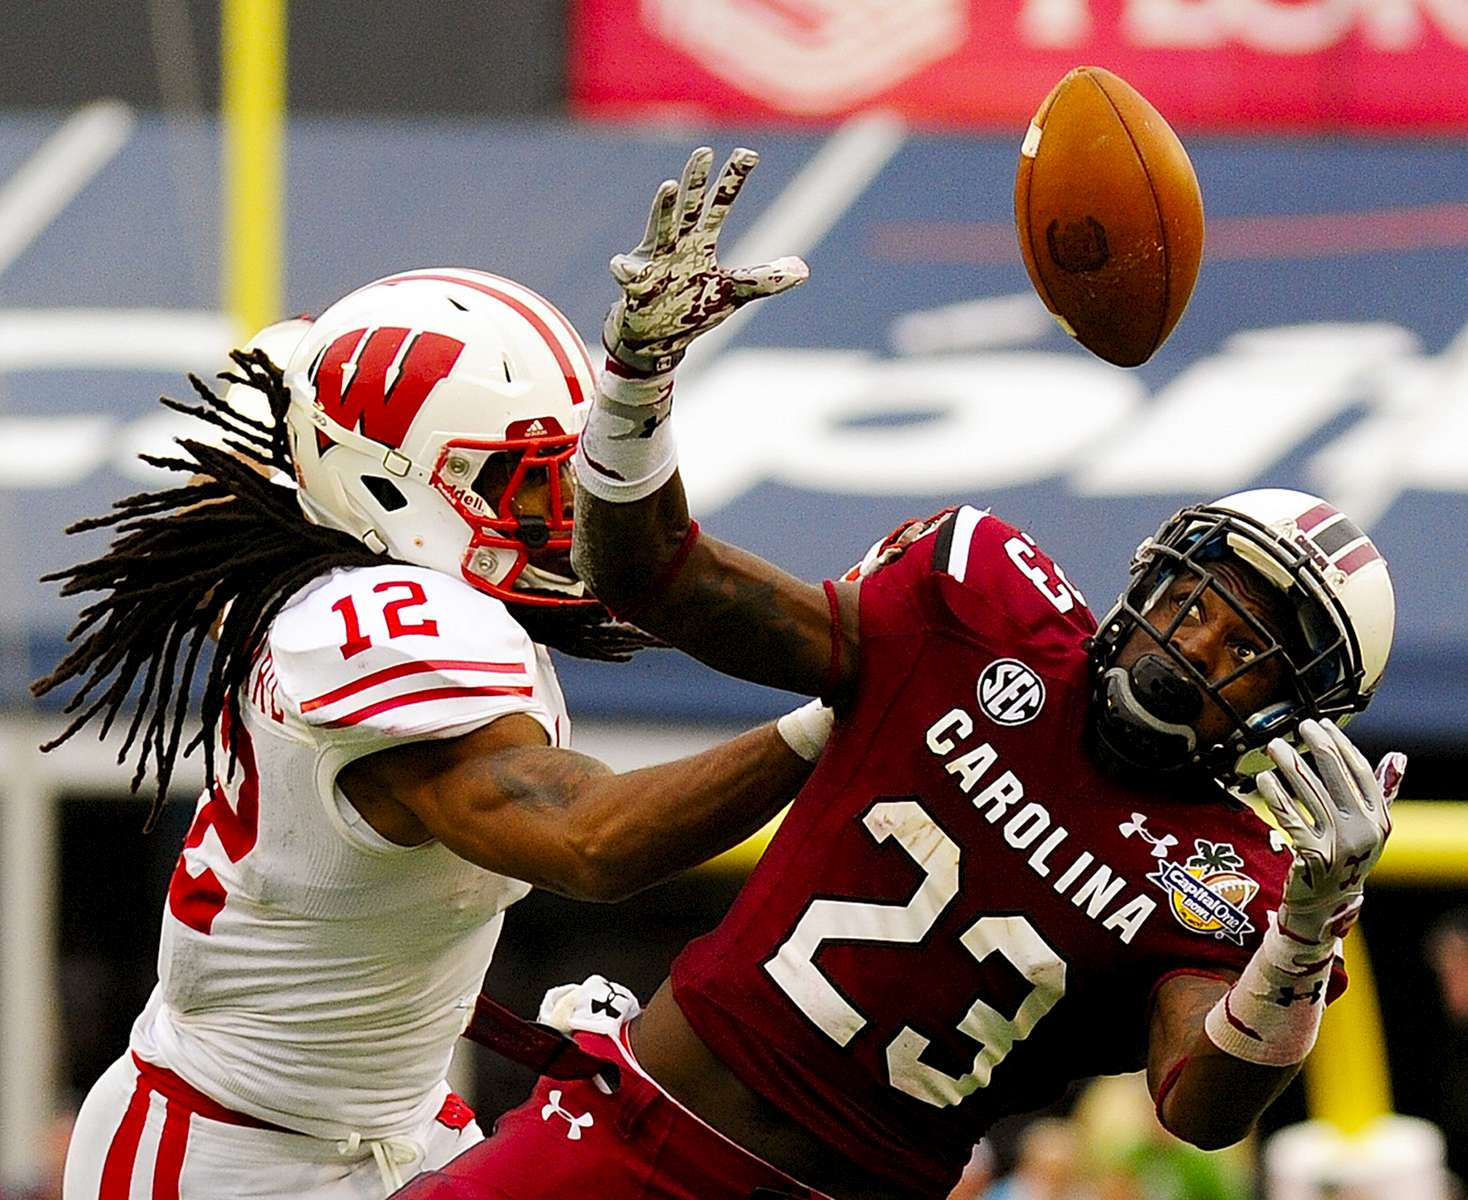 South Carolina Gamecocks running back Bruce Ellington catches a 22-yard pass on fourth down in front of Wisconsin Badgers safety Dezmen Southward in the third quarter  as the Gamecocks beat the Badgers 34-24 in the Capital One Bowl at Florida Citrus Bowl on Wednesday, January 1, 2014.